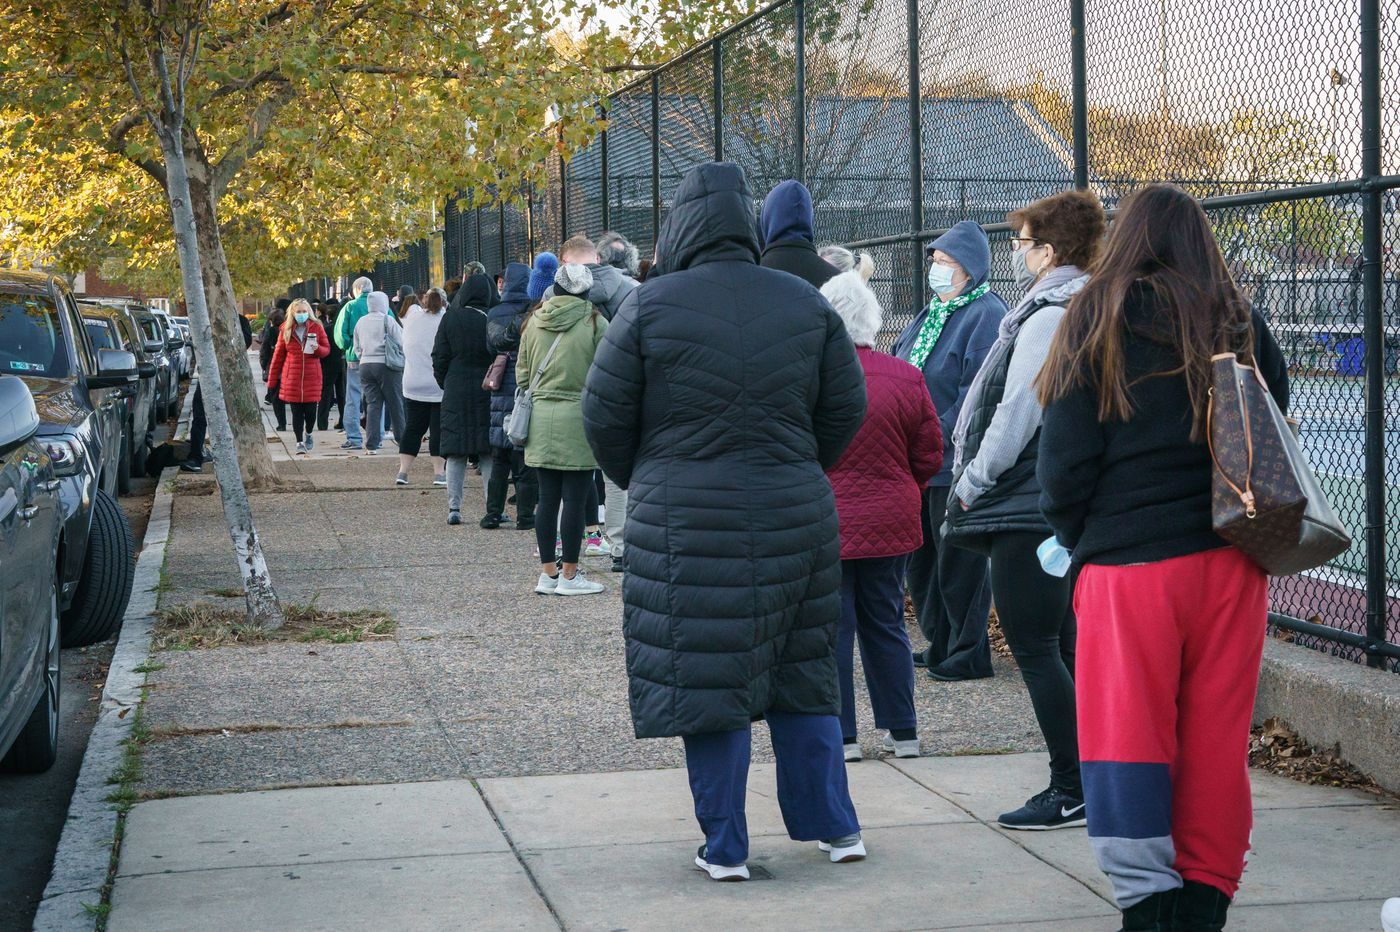 Waiting in line to vote? Here's how to kill time.